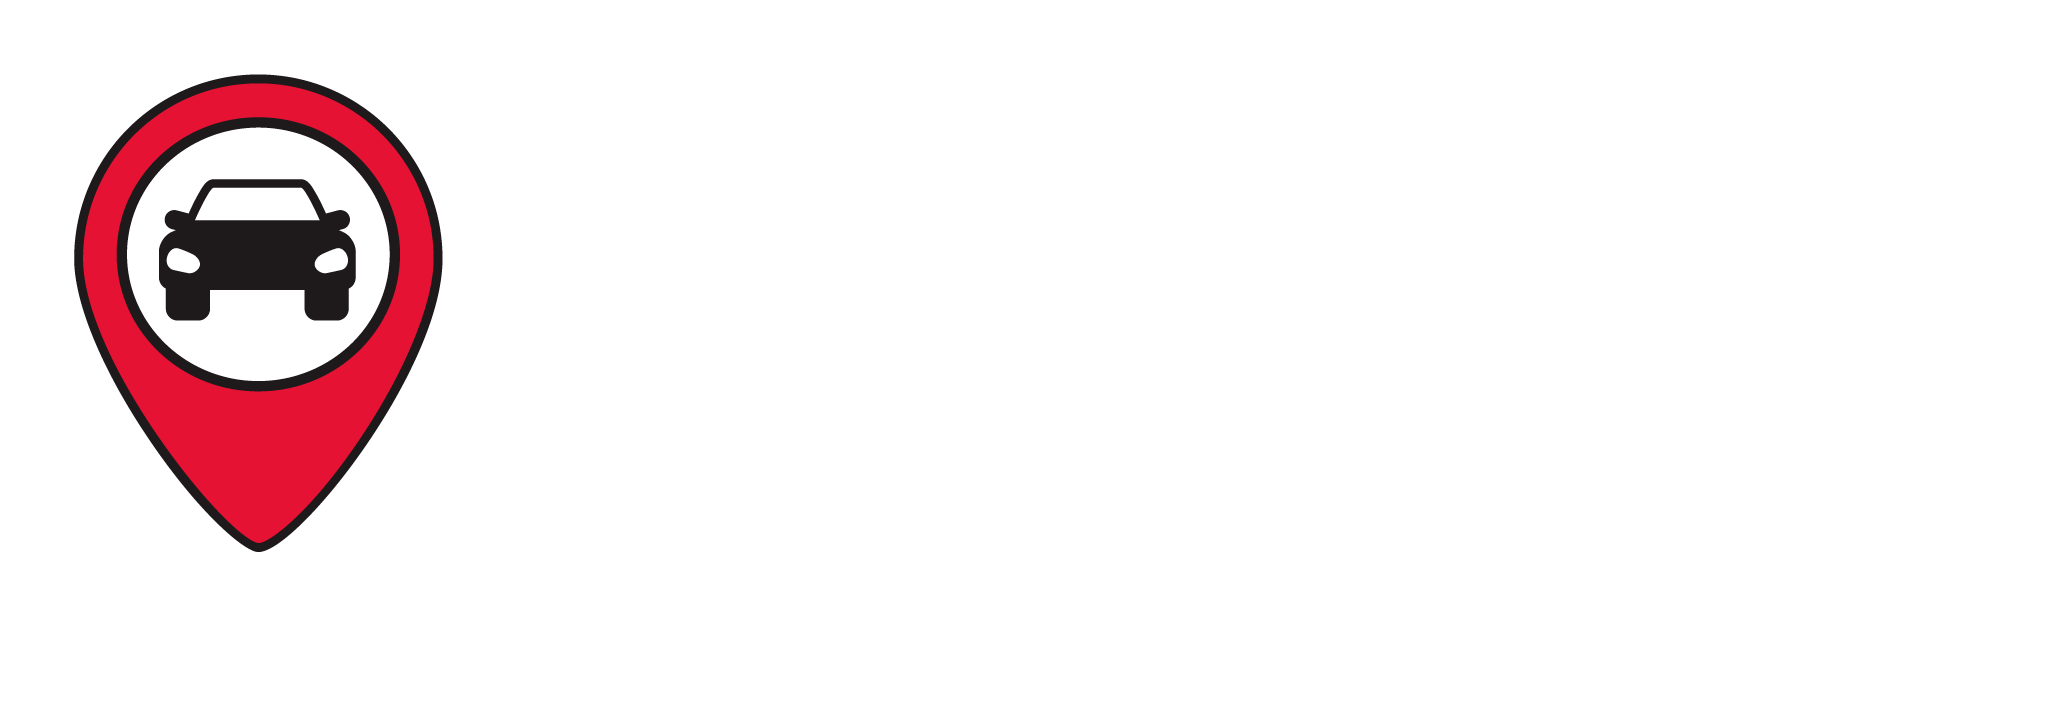 Cheap Parking Calgary